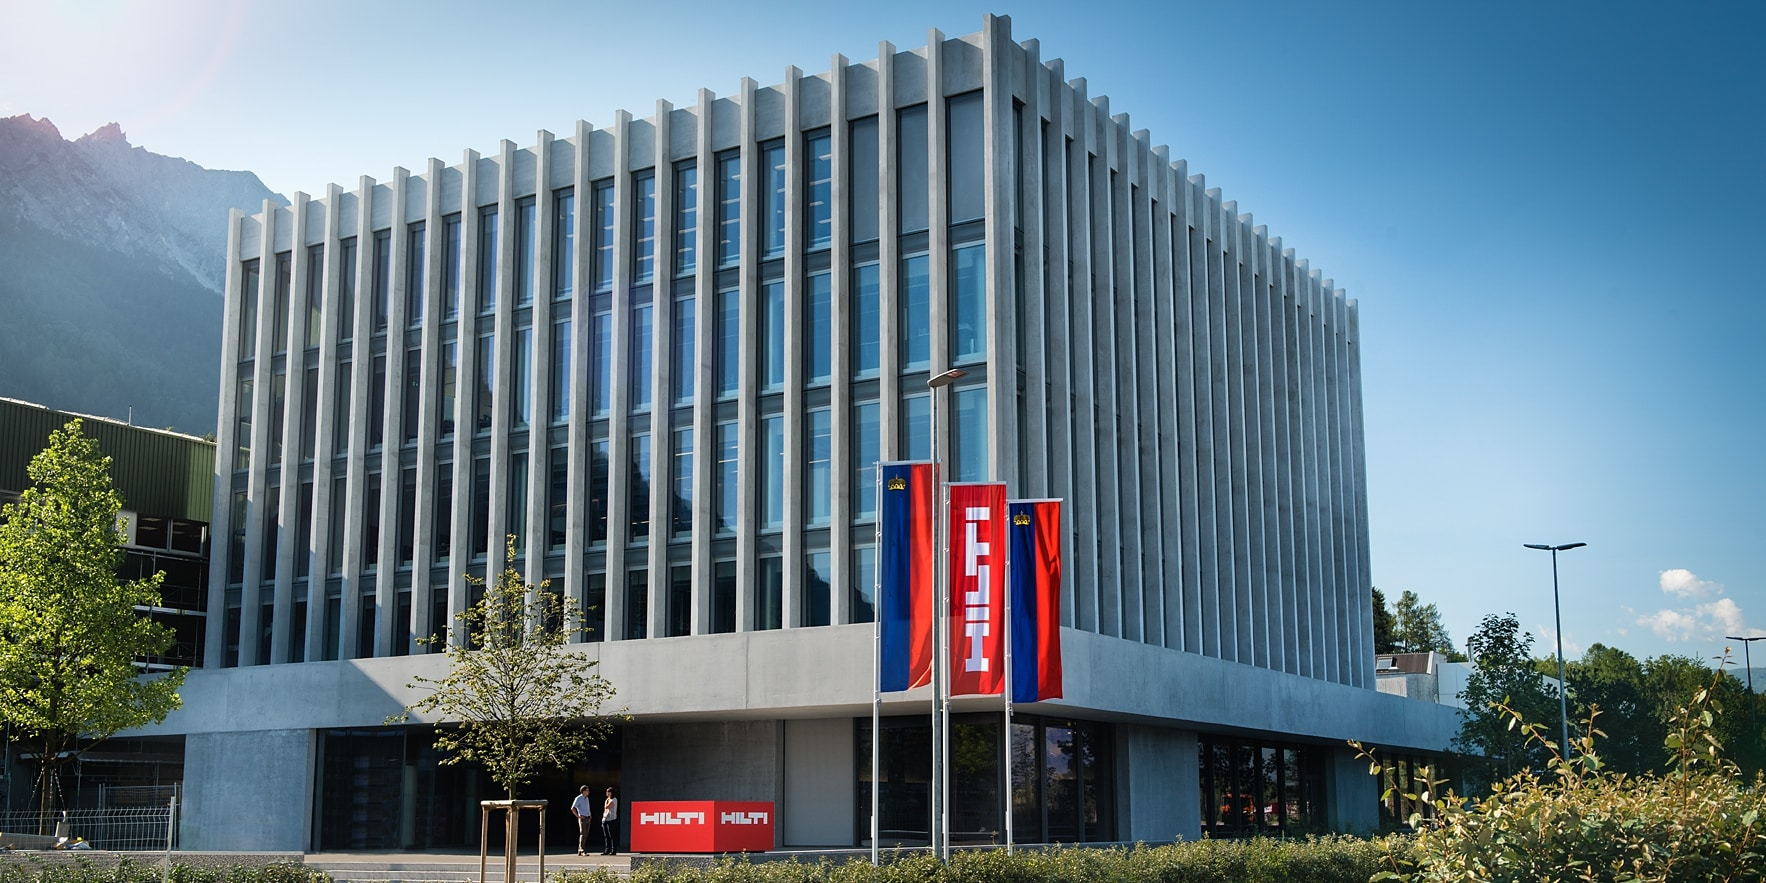 Hilti Academy officially opened